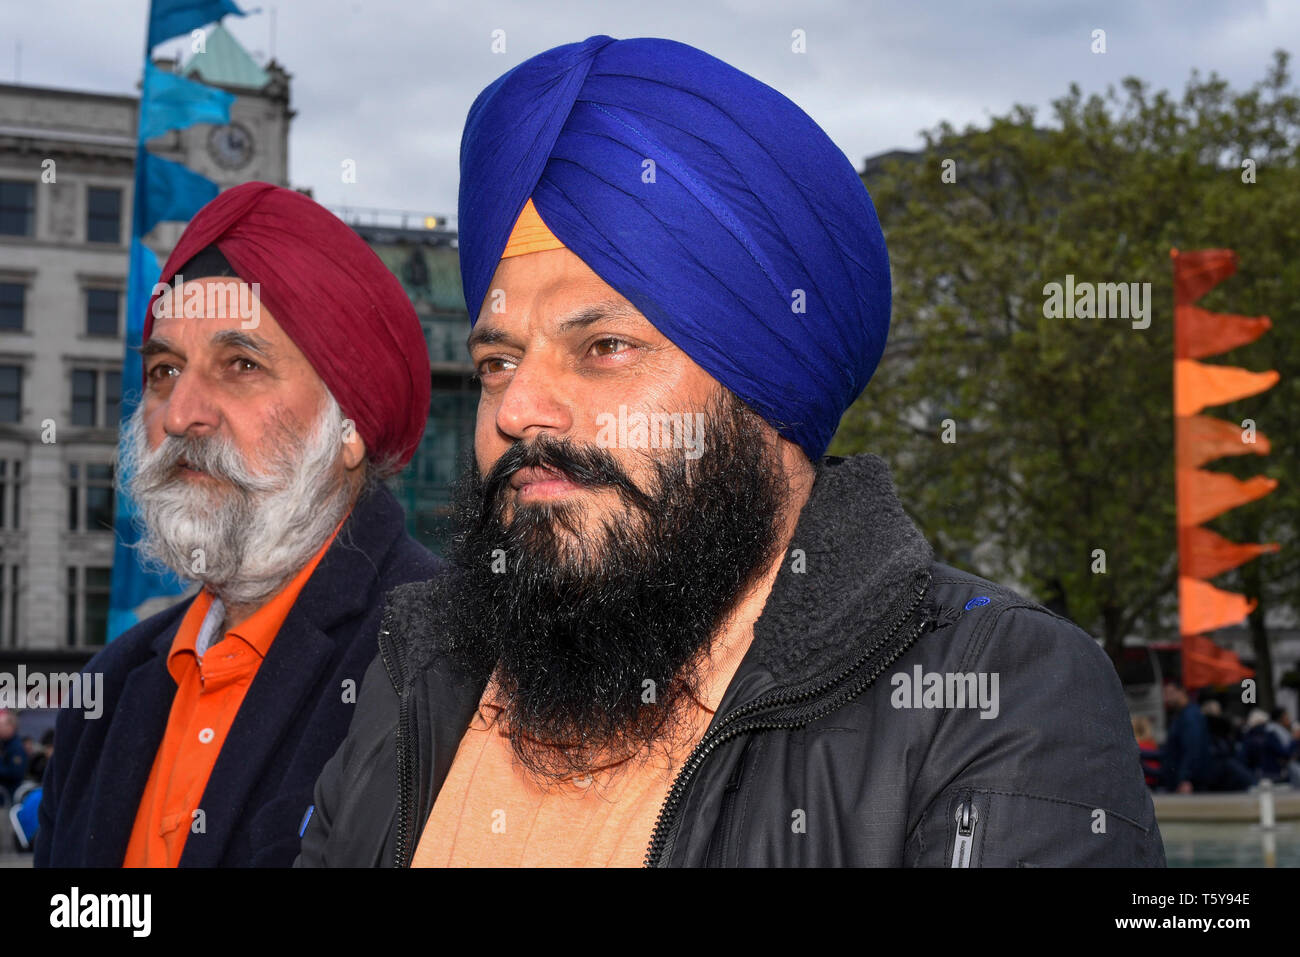 London, UK.  27 April 2019.  Visitors to the festival of Vaisakhi in Trafalgar Square, hosted by the Mayor of London.  For Sikhs and Punjabis, the festival celebrates the spring harvest and commemorates the founding of the Khalsa community over 300 years ago.  Credit: Stephen Chung / Alamy Live News - Stock Image